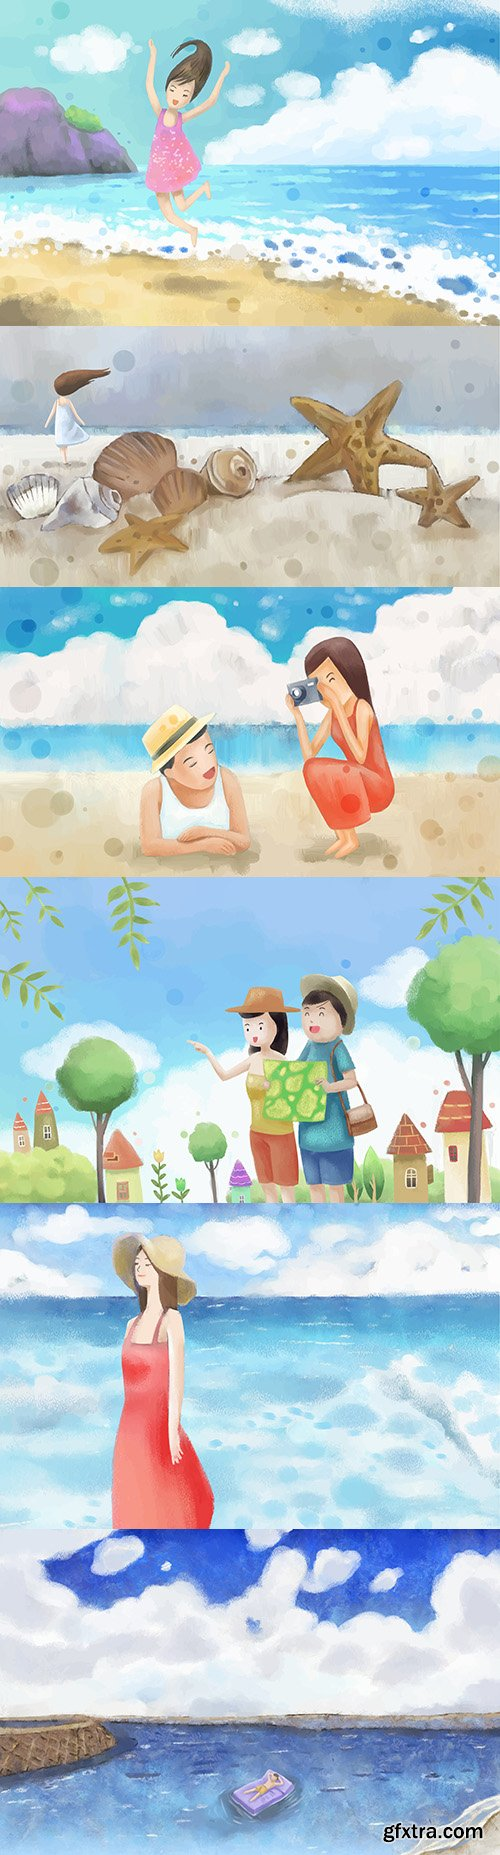 Summer holiday at sea watercolor background